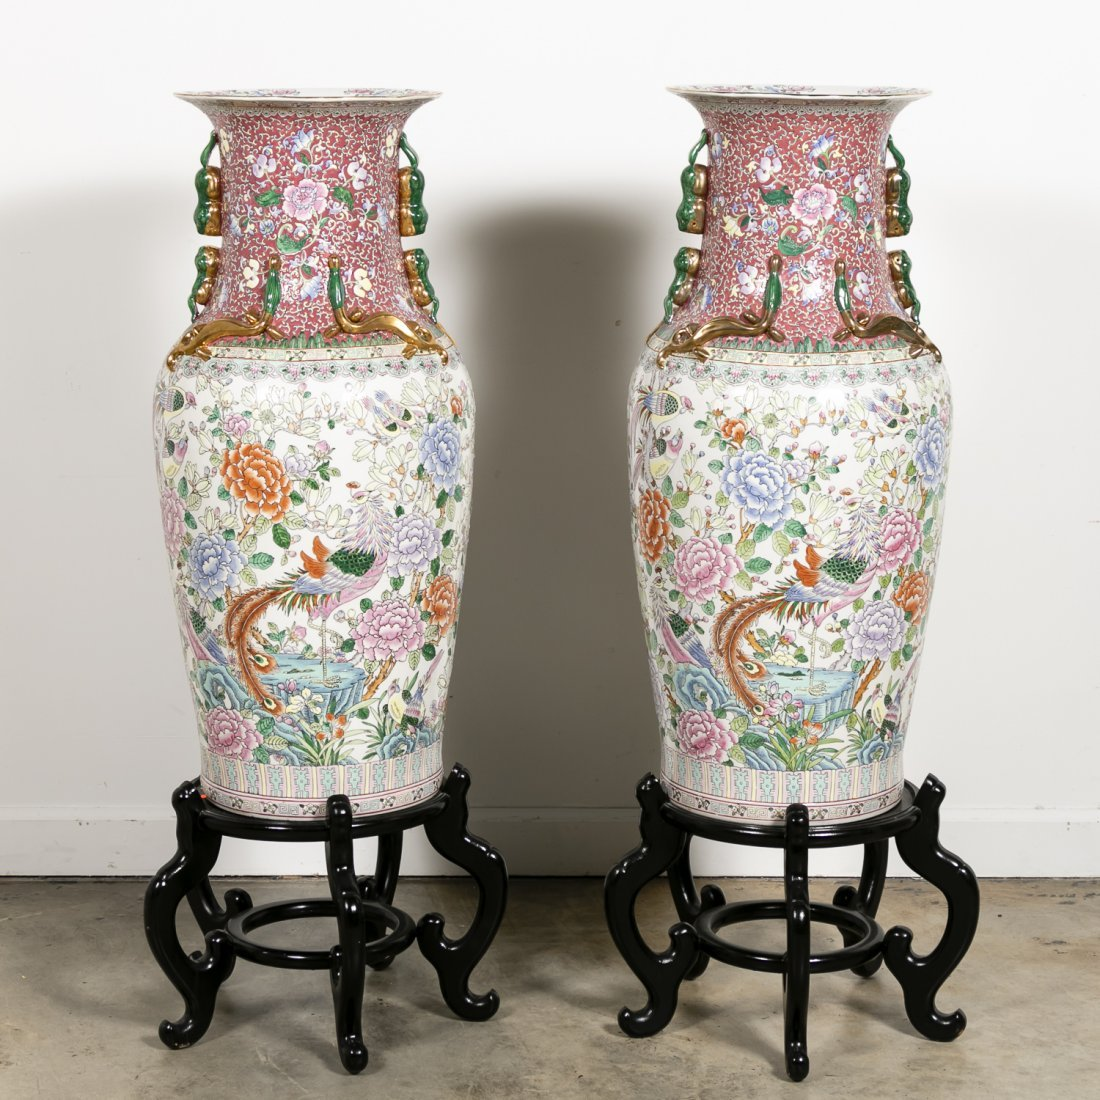 Pair, Chinese Porcelain Floor Vases on Stands